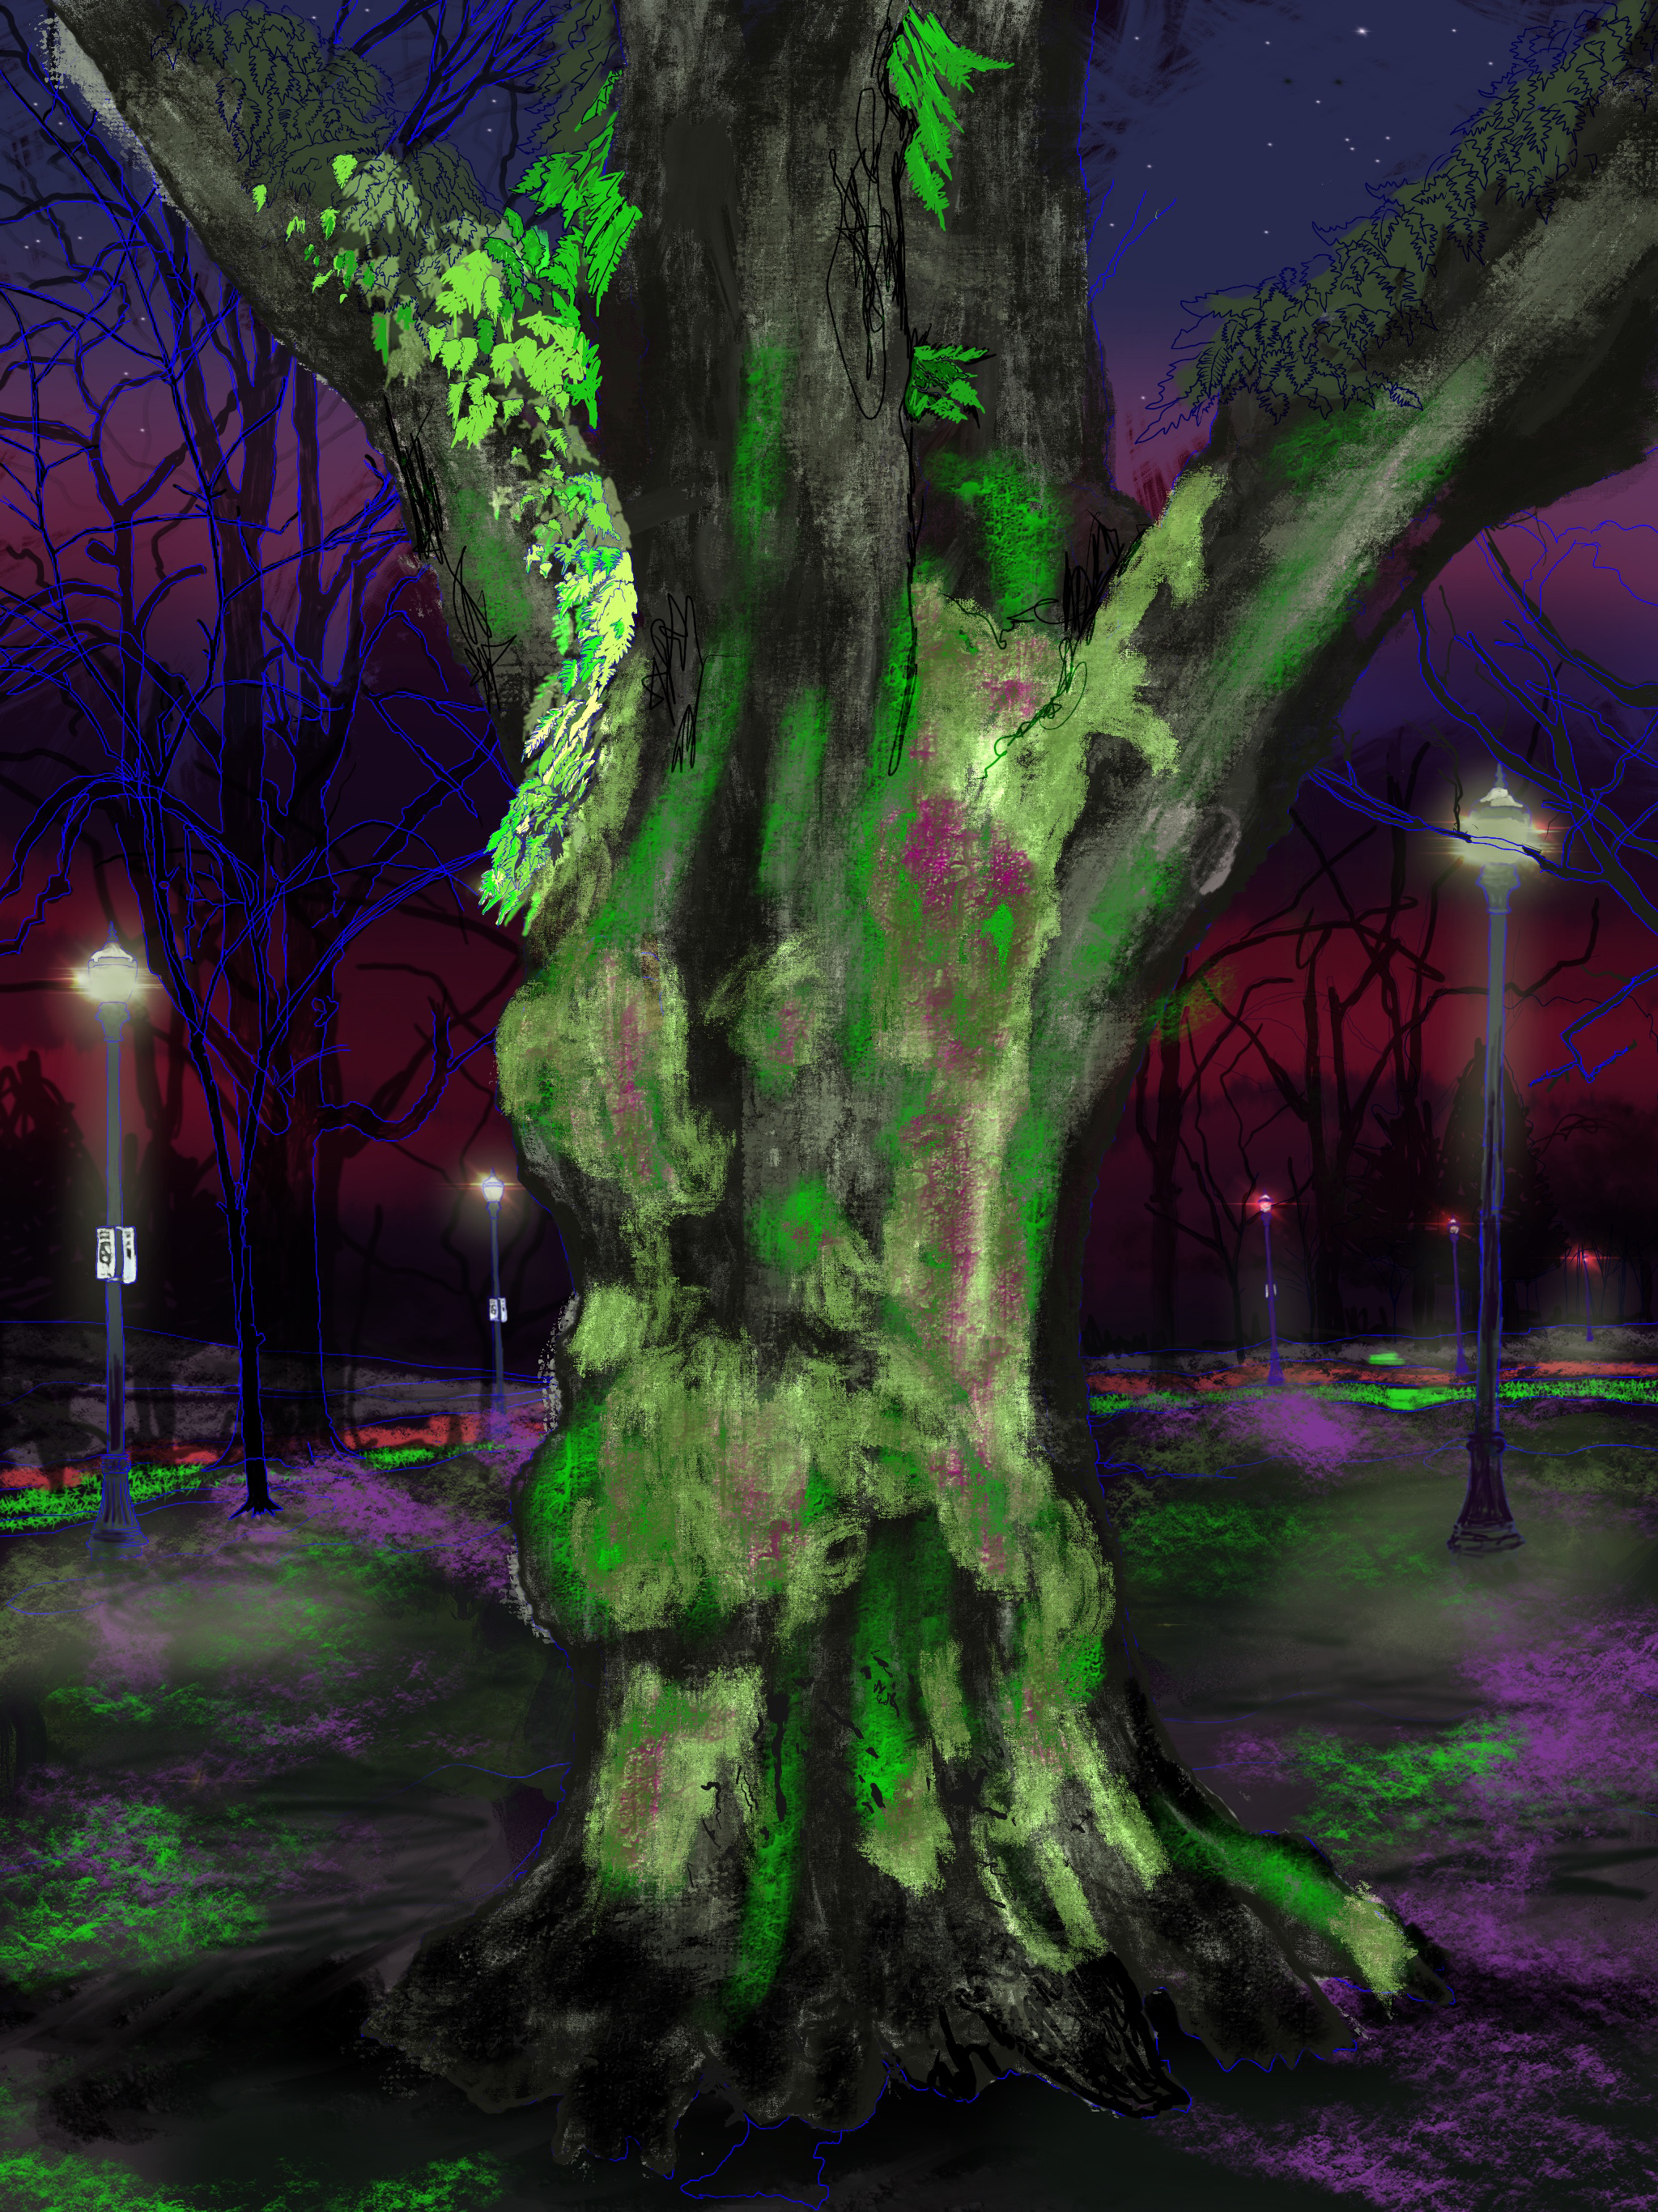 """Giant Moss Covered Tree, 5, North Park Blocks. Portland, OR   19""""x13"""", (48.26x33.02cm) Dimensions Variable   Electronics Painting, iPad, Procreate, © 2017"""